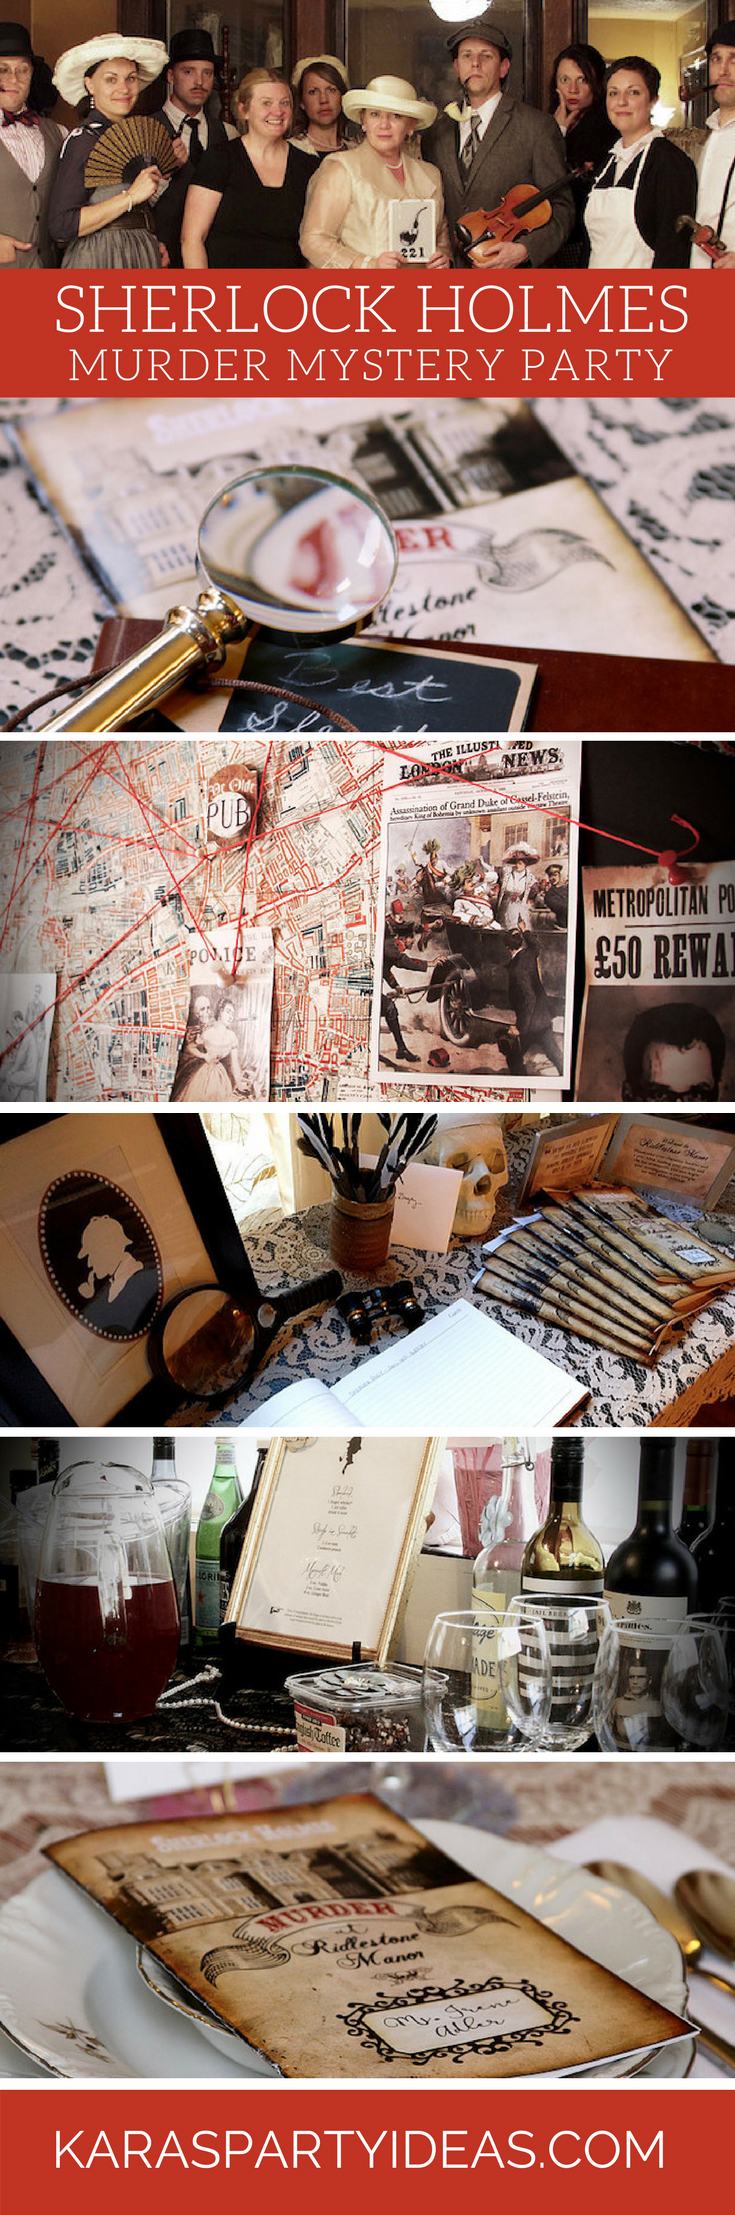 Sherlock Holmes Murder Mystery Party via Kara's Party Ideas - KarasPartyIdeas.com